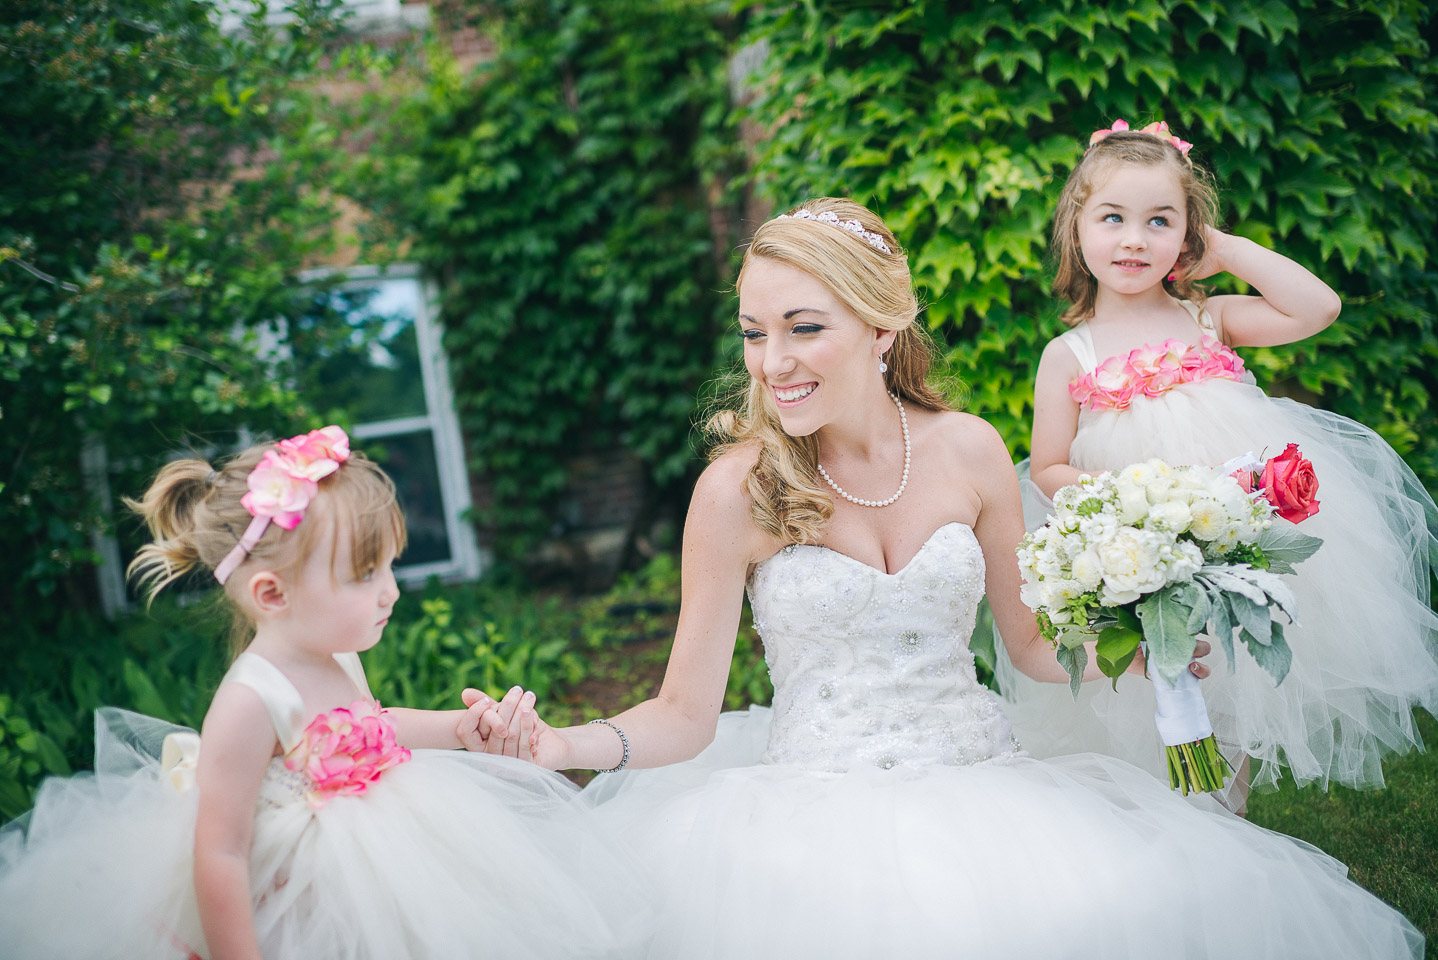 NH Wedding Photography: flower girls with bride